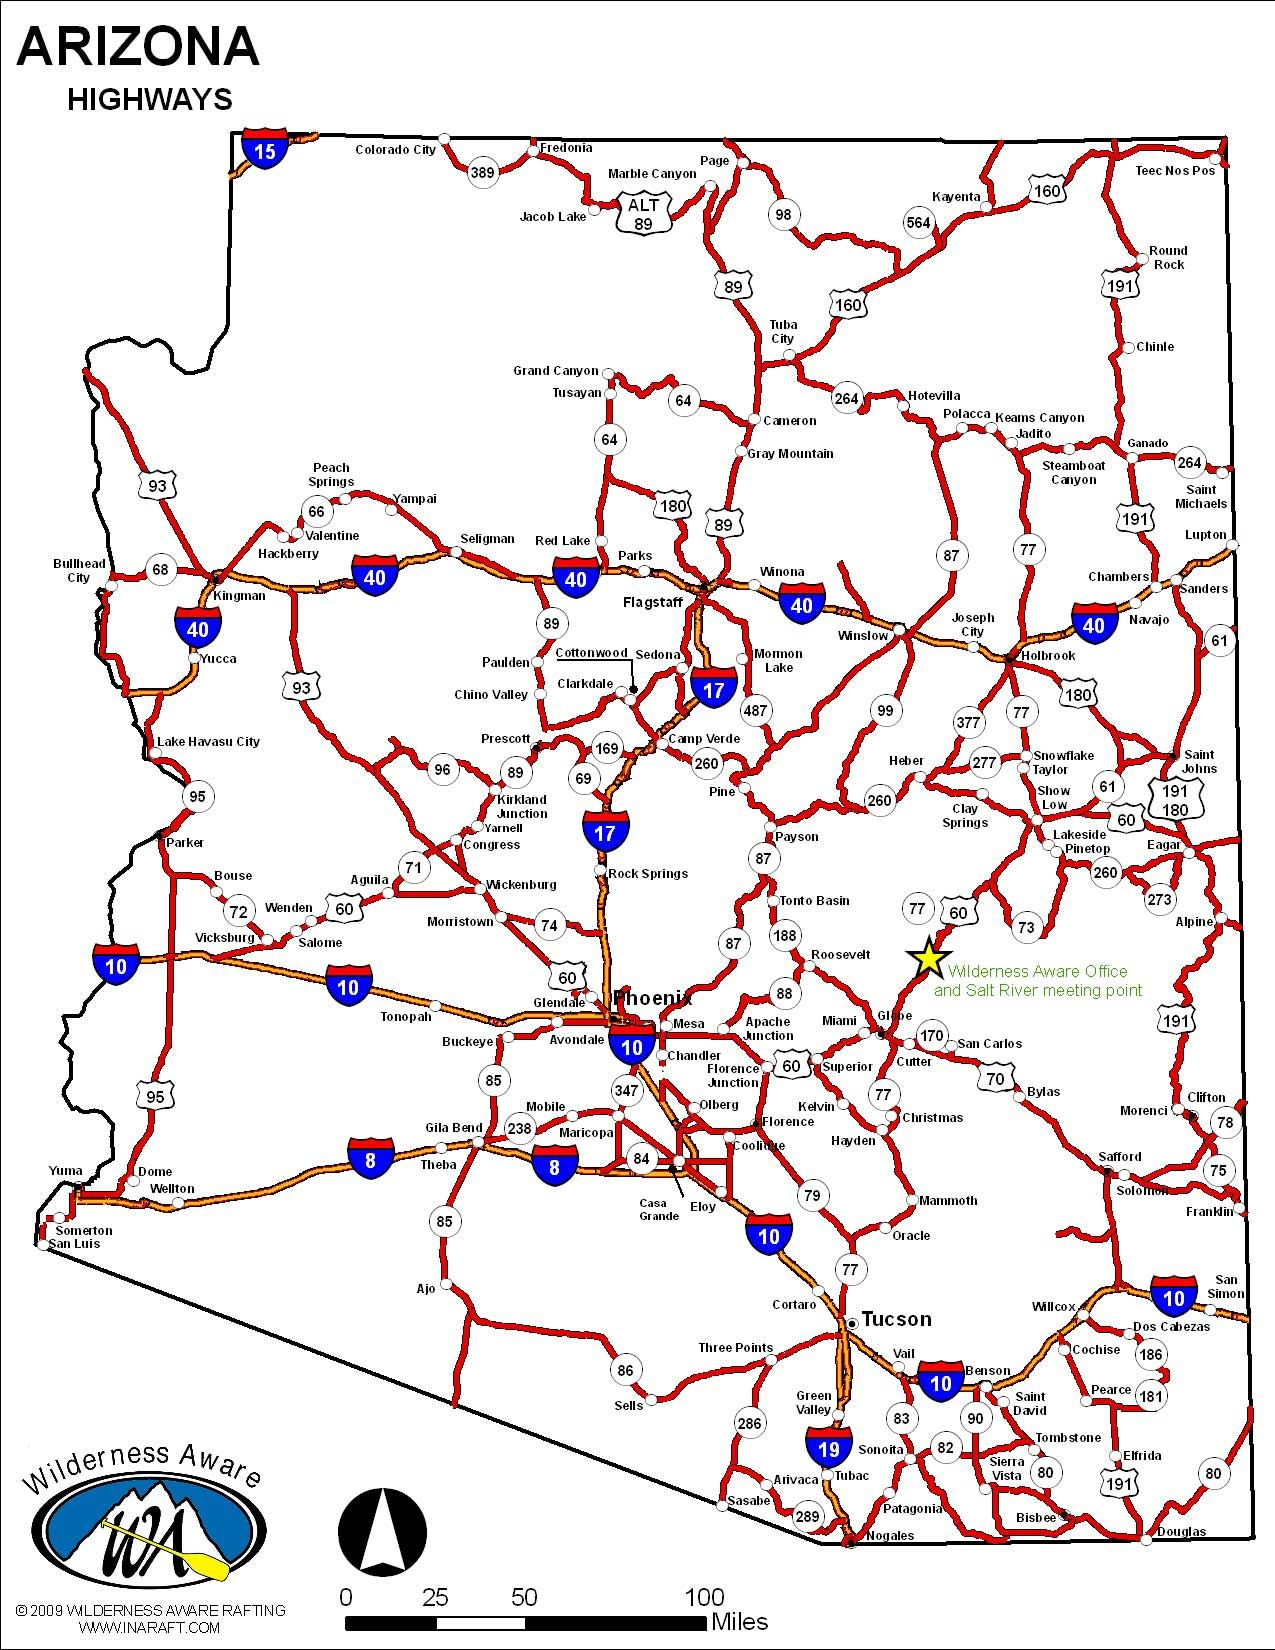 image of arizona state highway map | Salt River Canyon Road Map ...